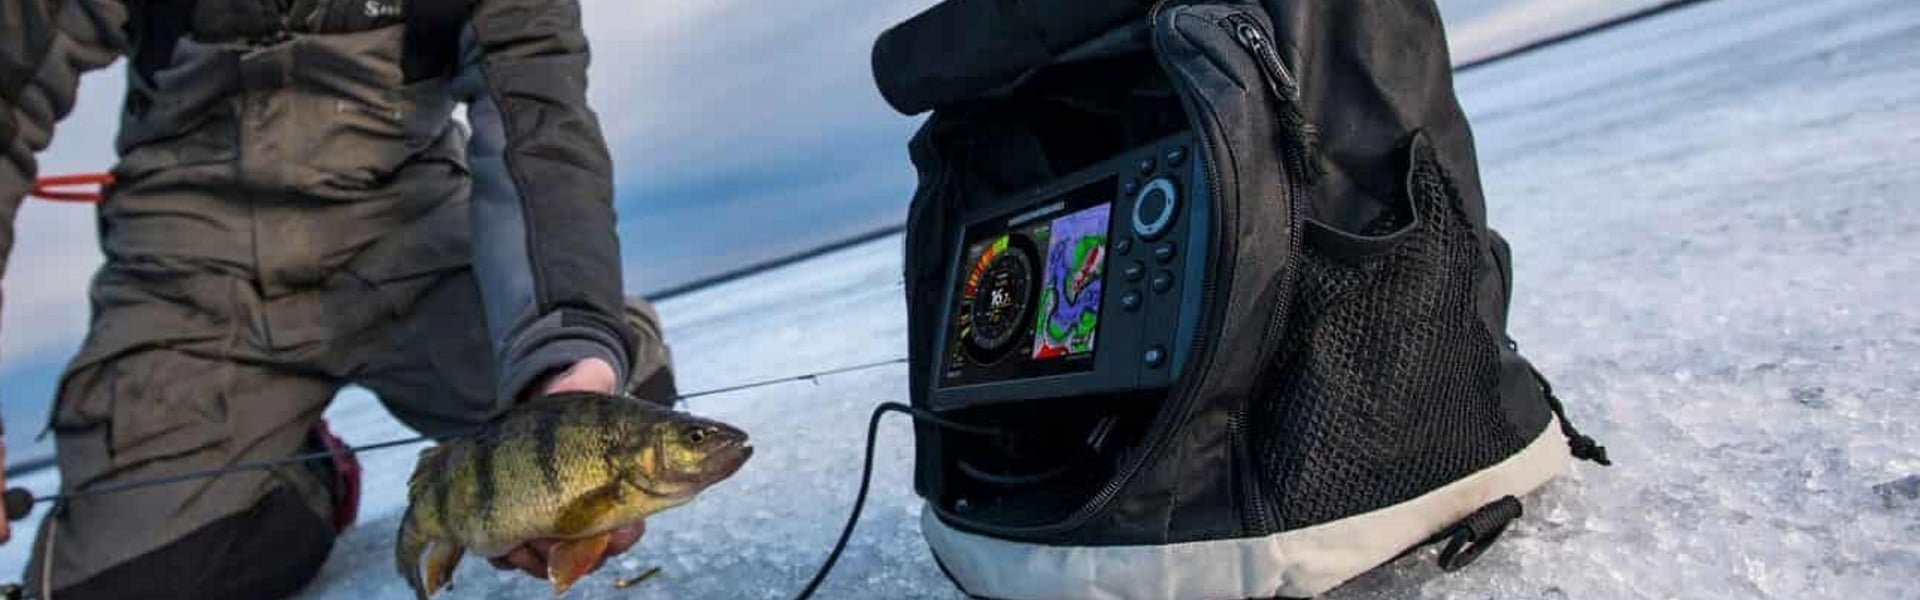 Best Ice Fishing Flashers Reviewed in Detail